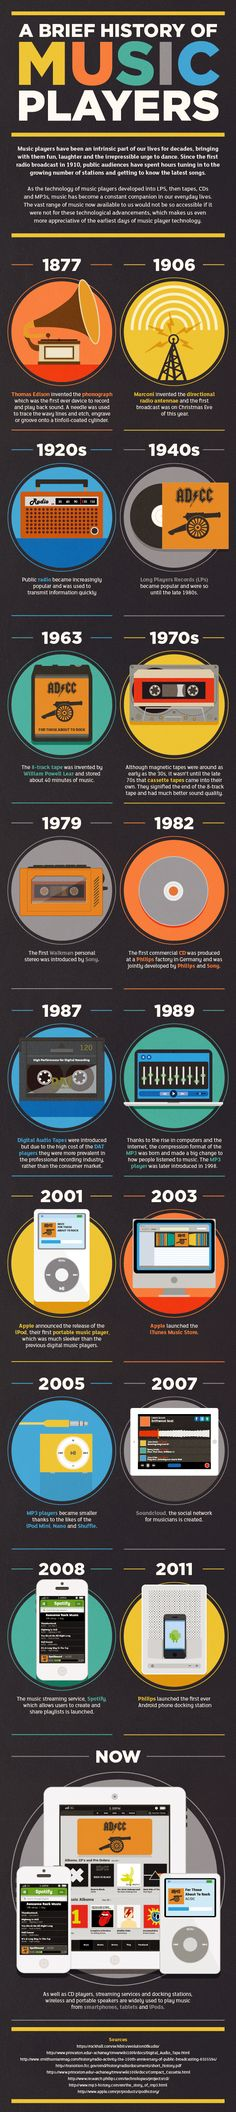 a brief history of music players infographic